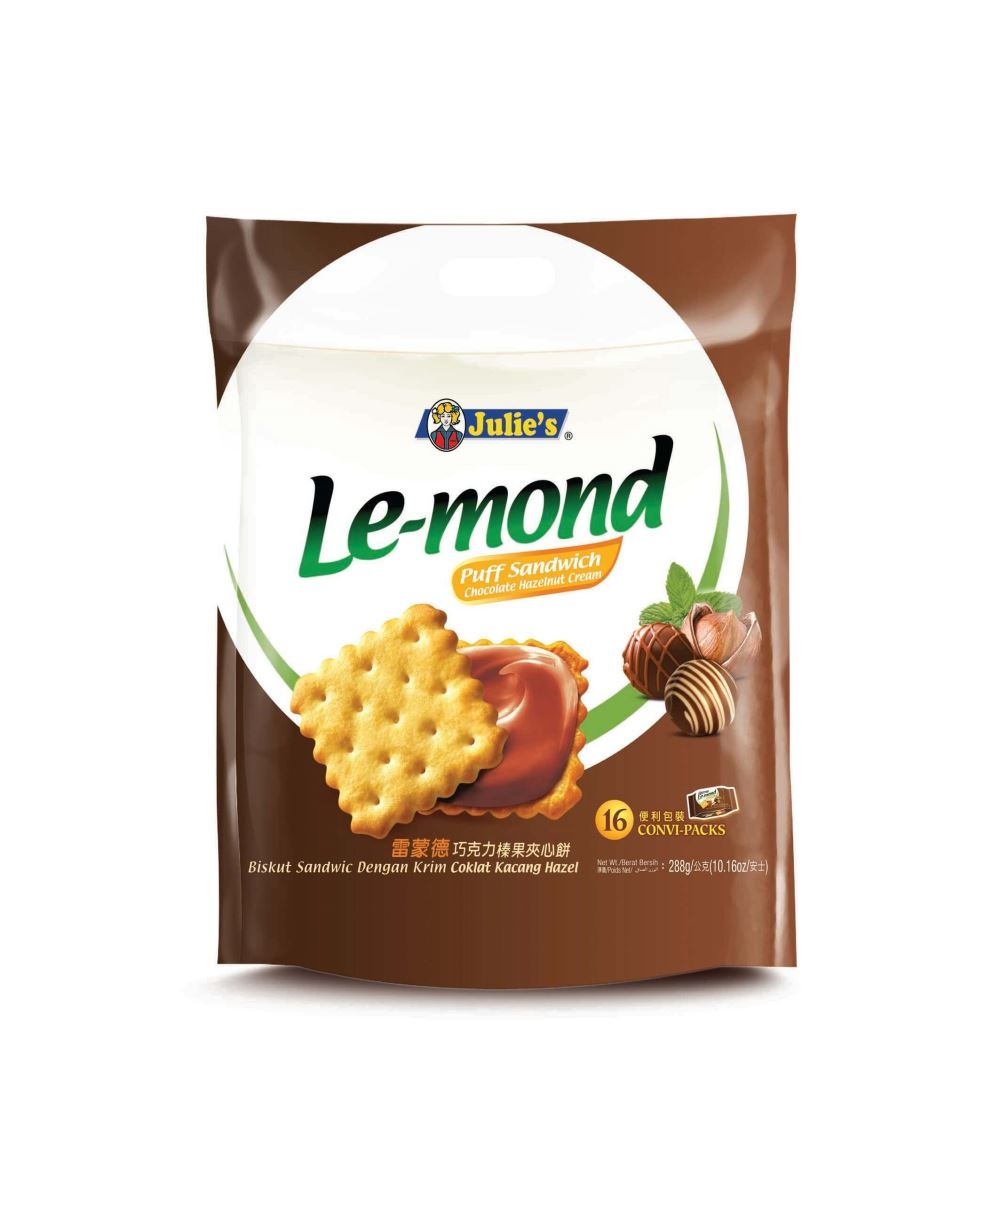 Le-Mond Puff Sandwich Chocolate Hazelnut Cream 288g